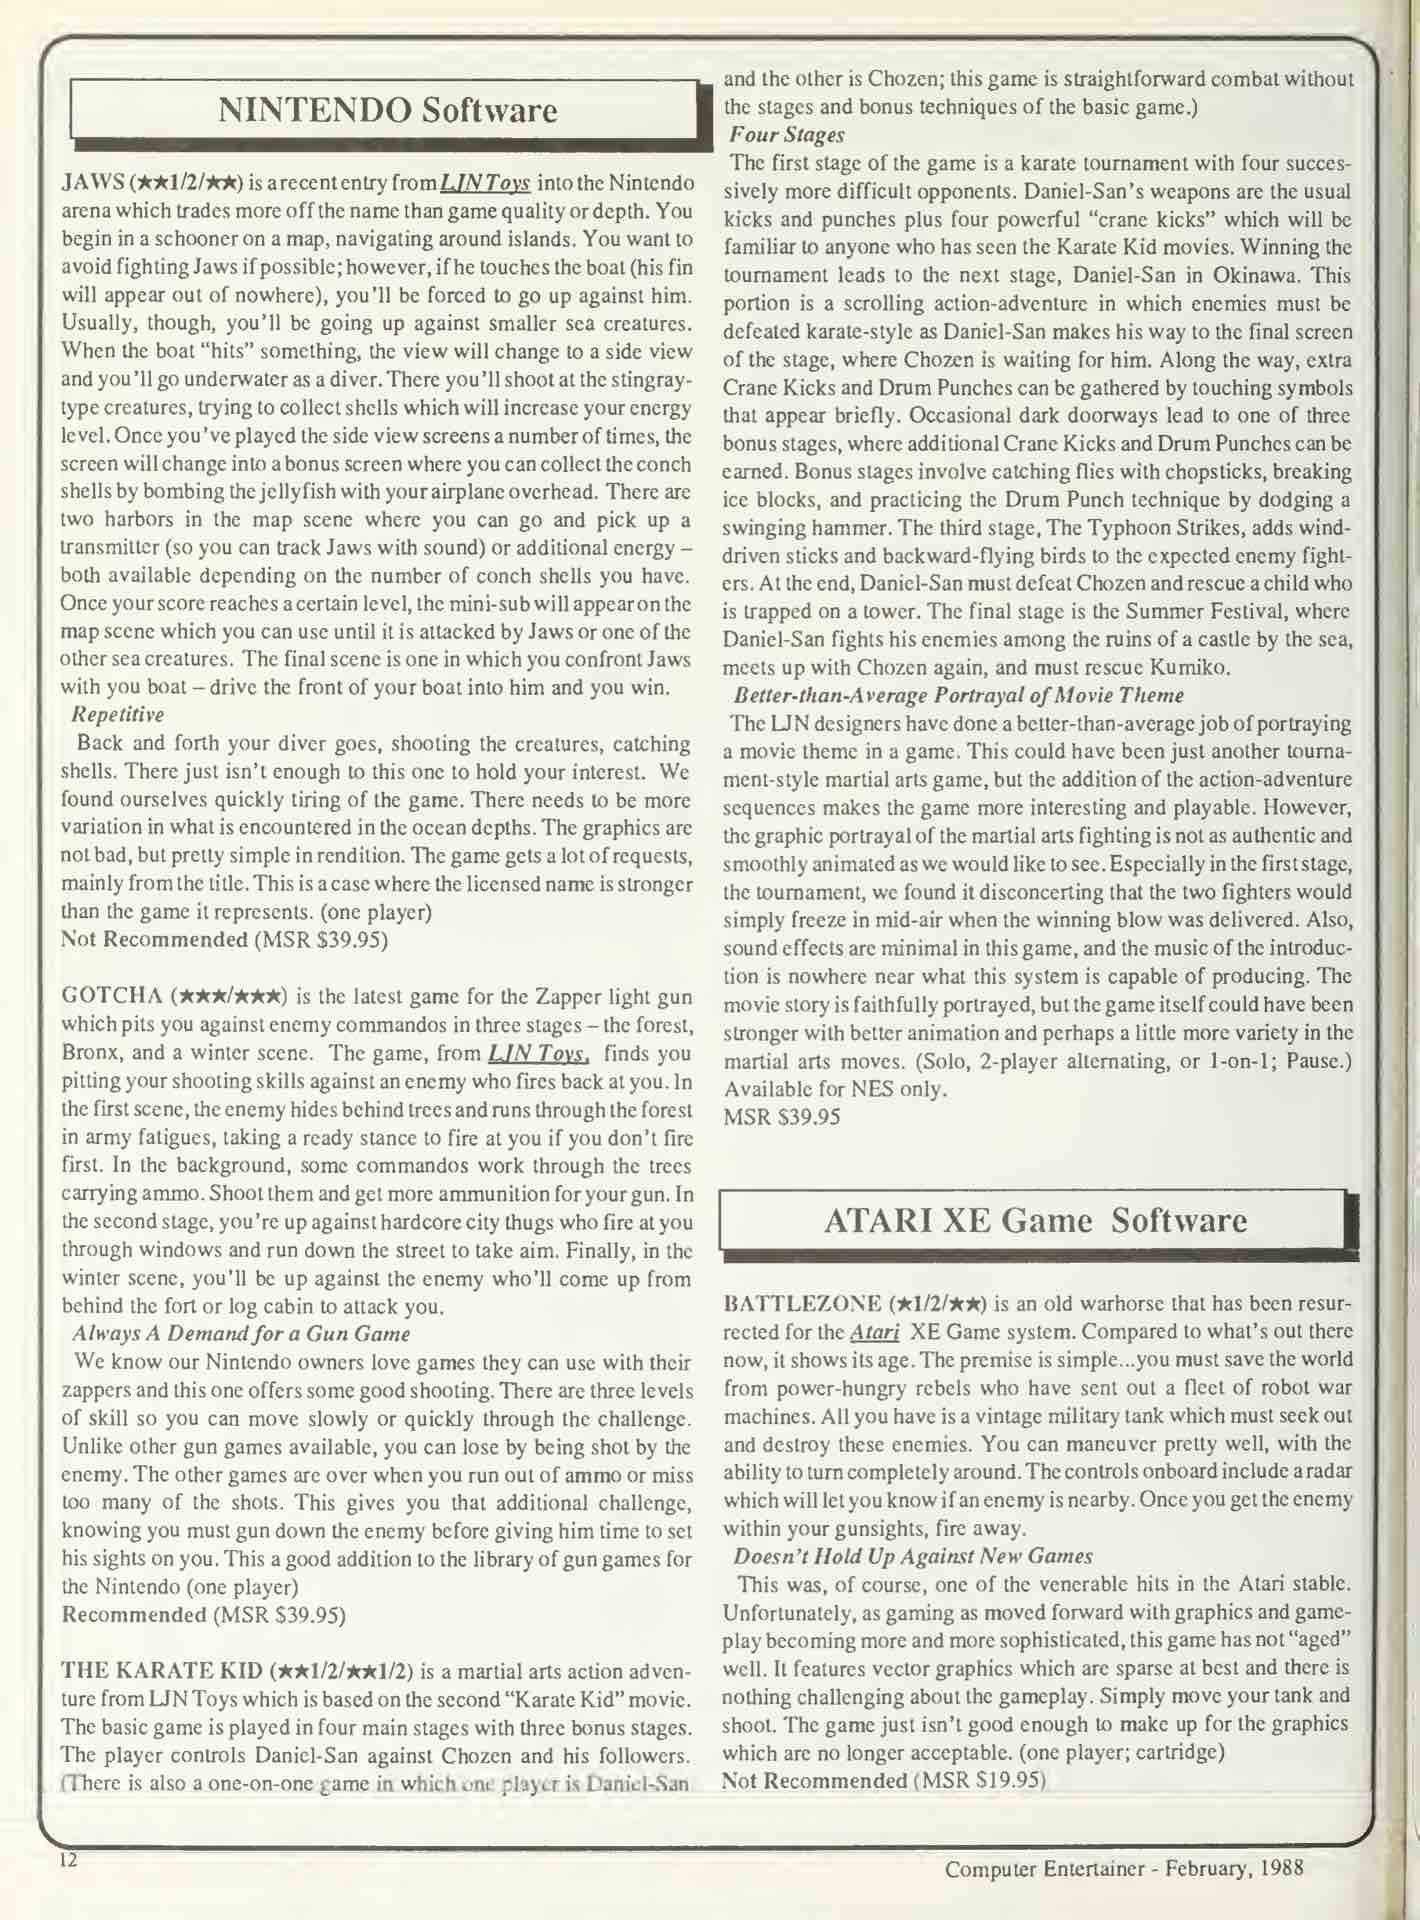 Computer Entertainer - February 1988 - p12